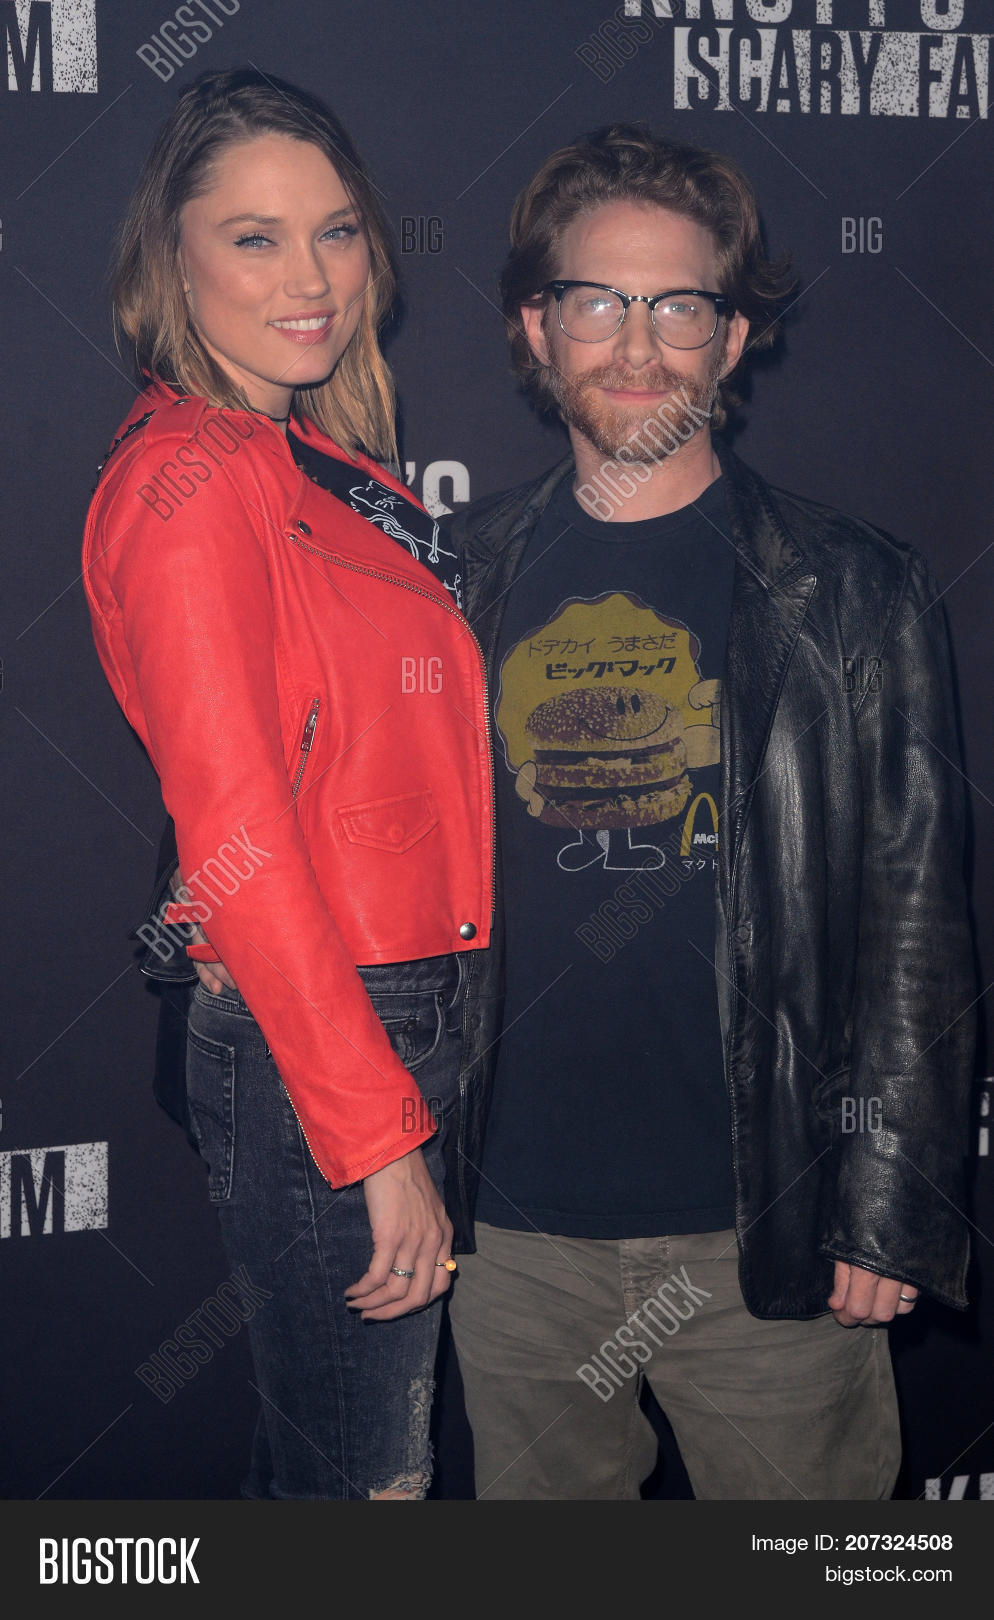 Clare grant knotts scary farm celebrity night in buena park nudes (22 photo)